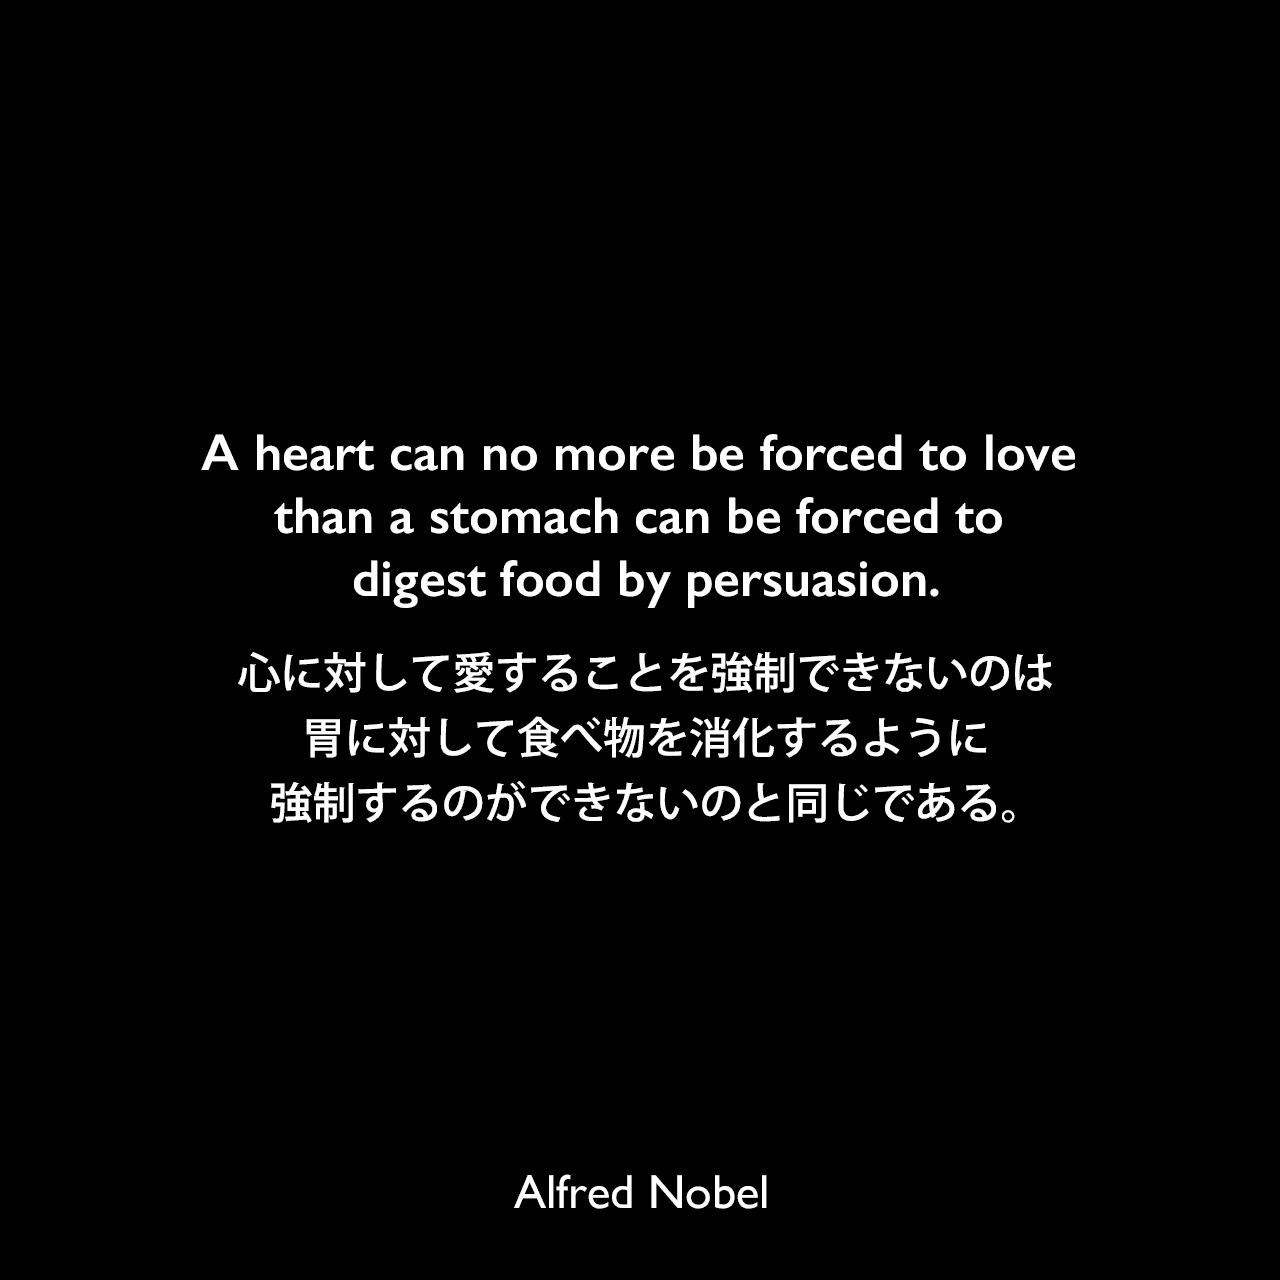 A heart can no more be forced to love than a stomach can be forced to digest food by persuasion.心に対して愛することを強制できないのは、胃に対して食べ物を消化するように強制するのができないのと同じである。Alfred Nobel